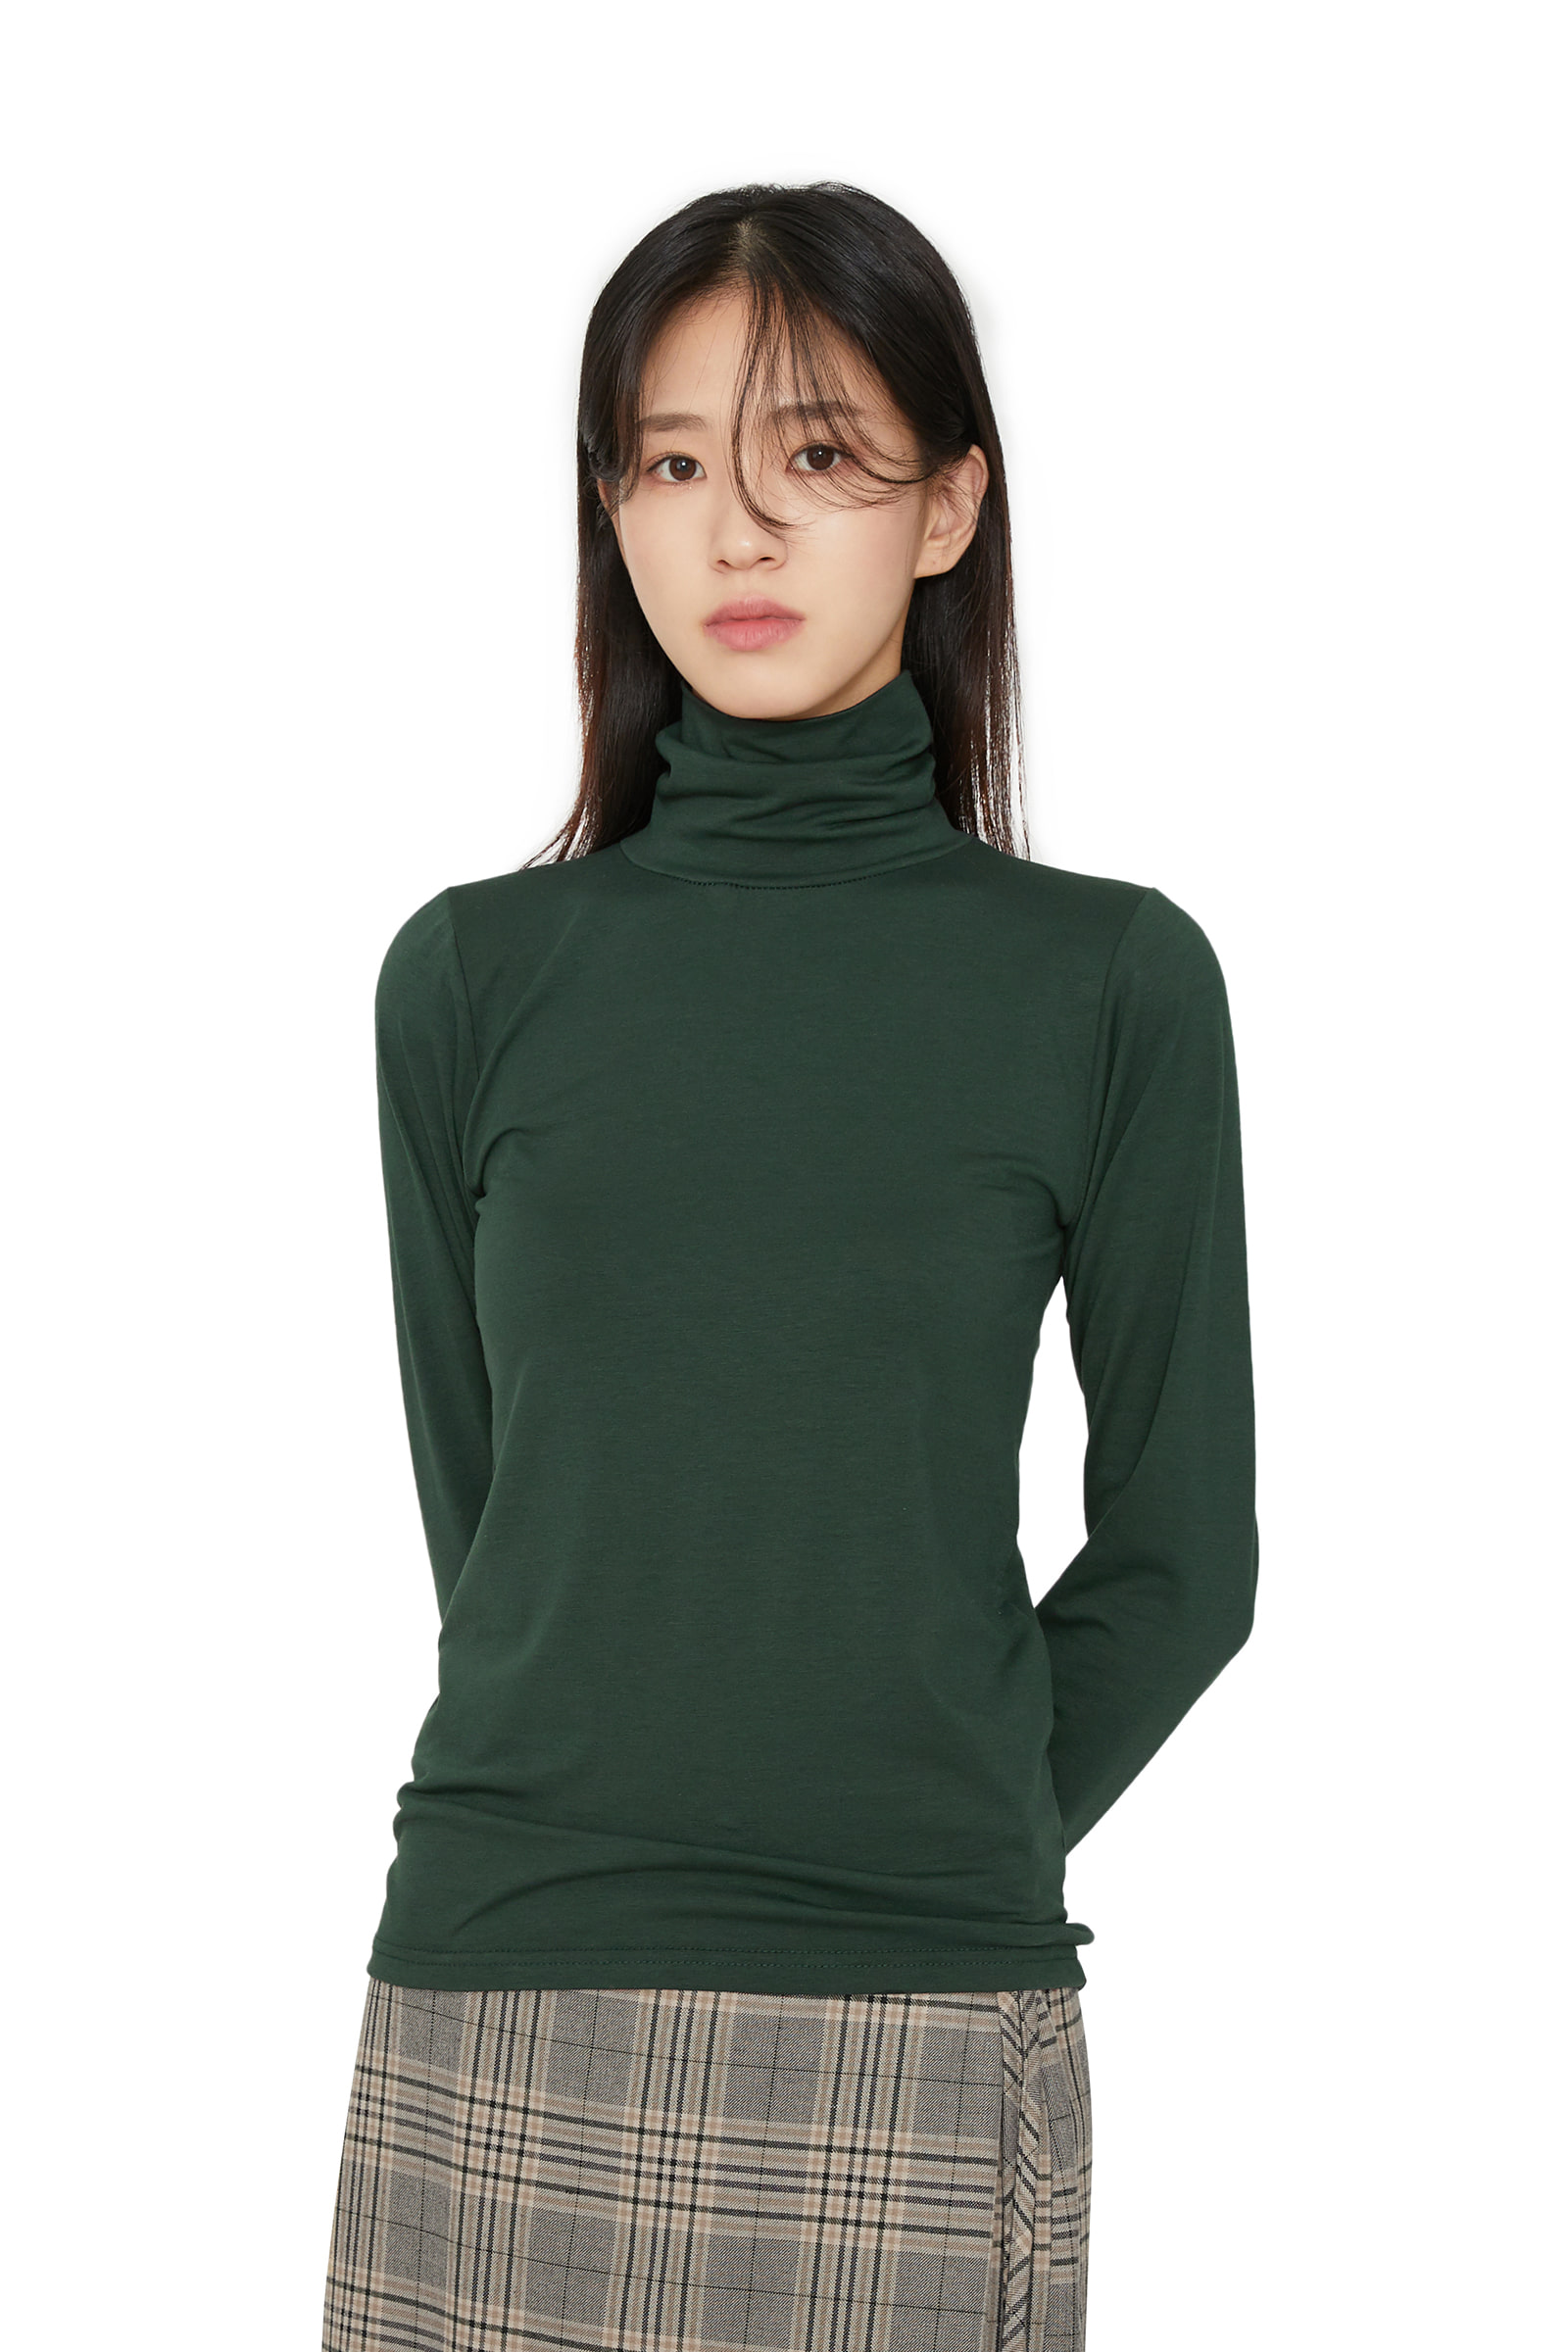 Wale daily turtleneck top